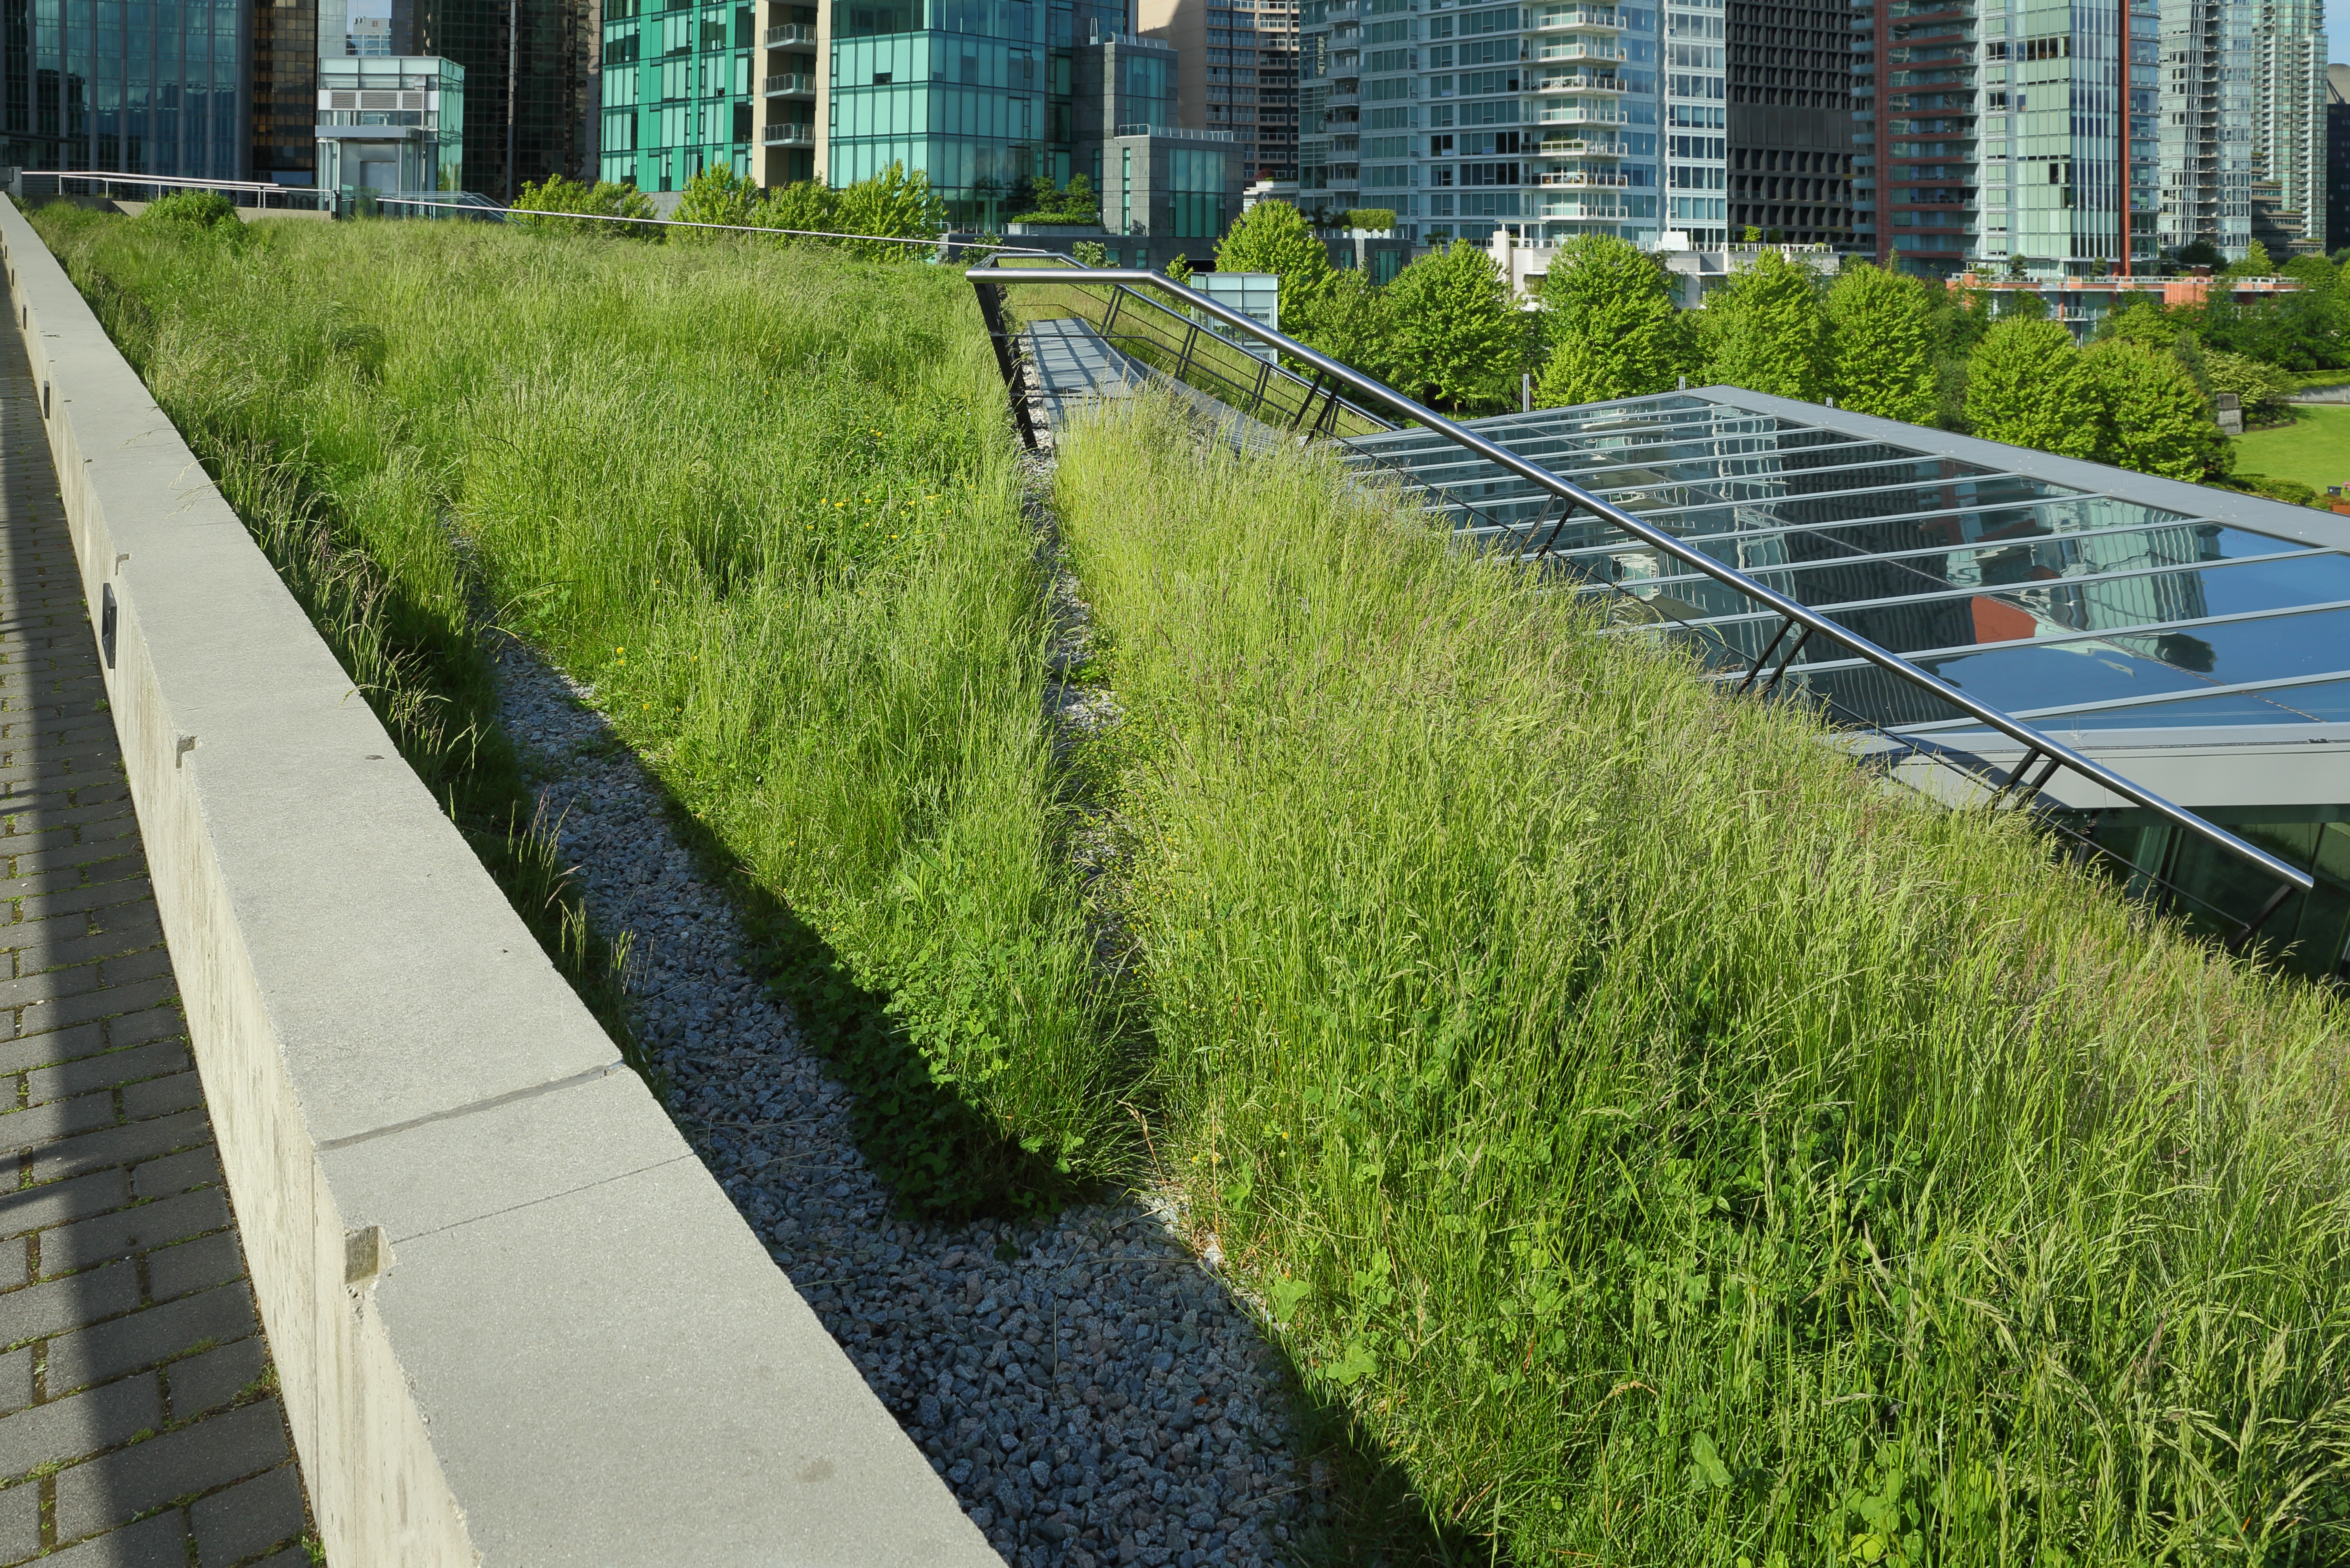 Grass Growing on a Green Roof